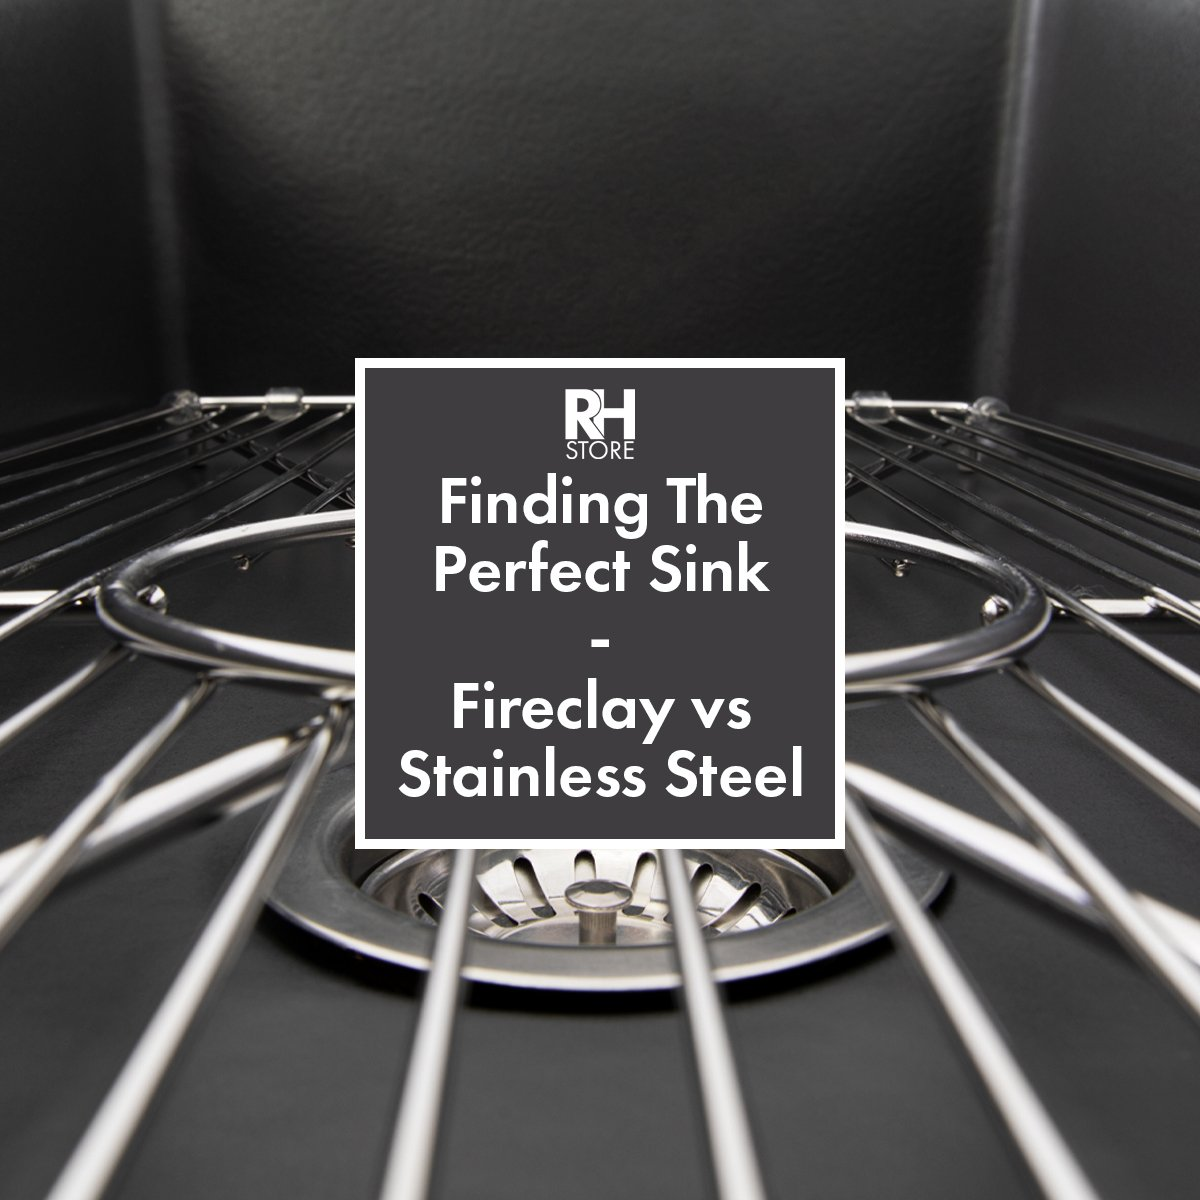 Finding The Perfect Sink - Fireclay vs Stainless Steel